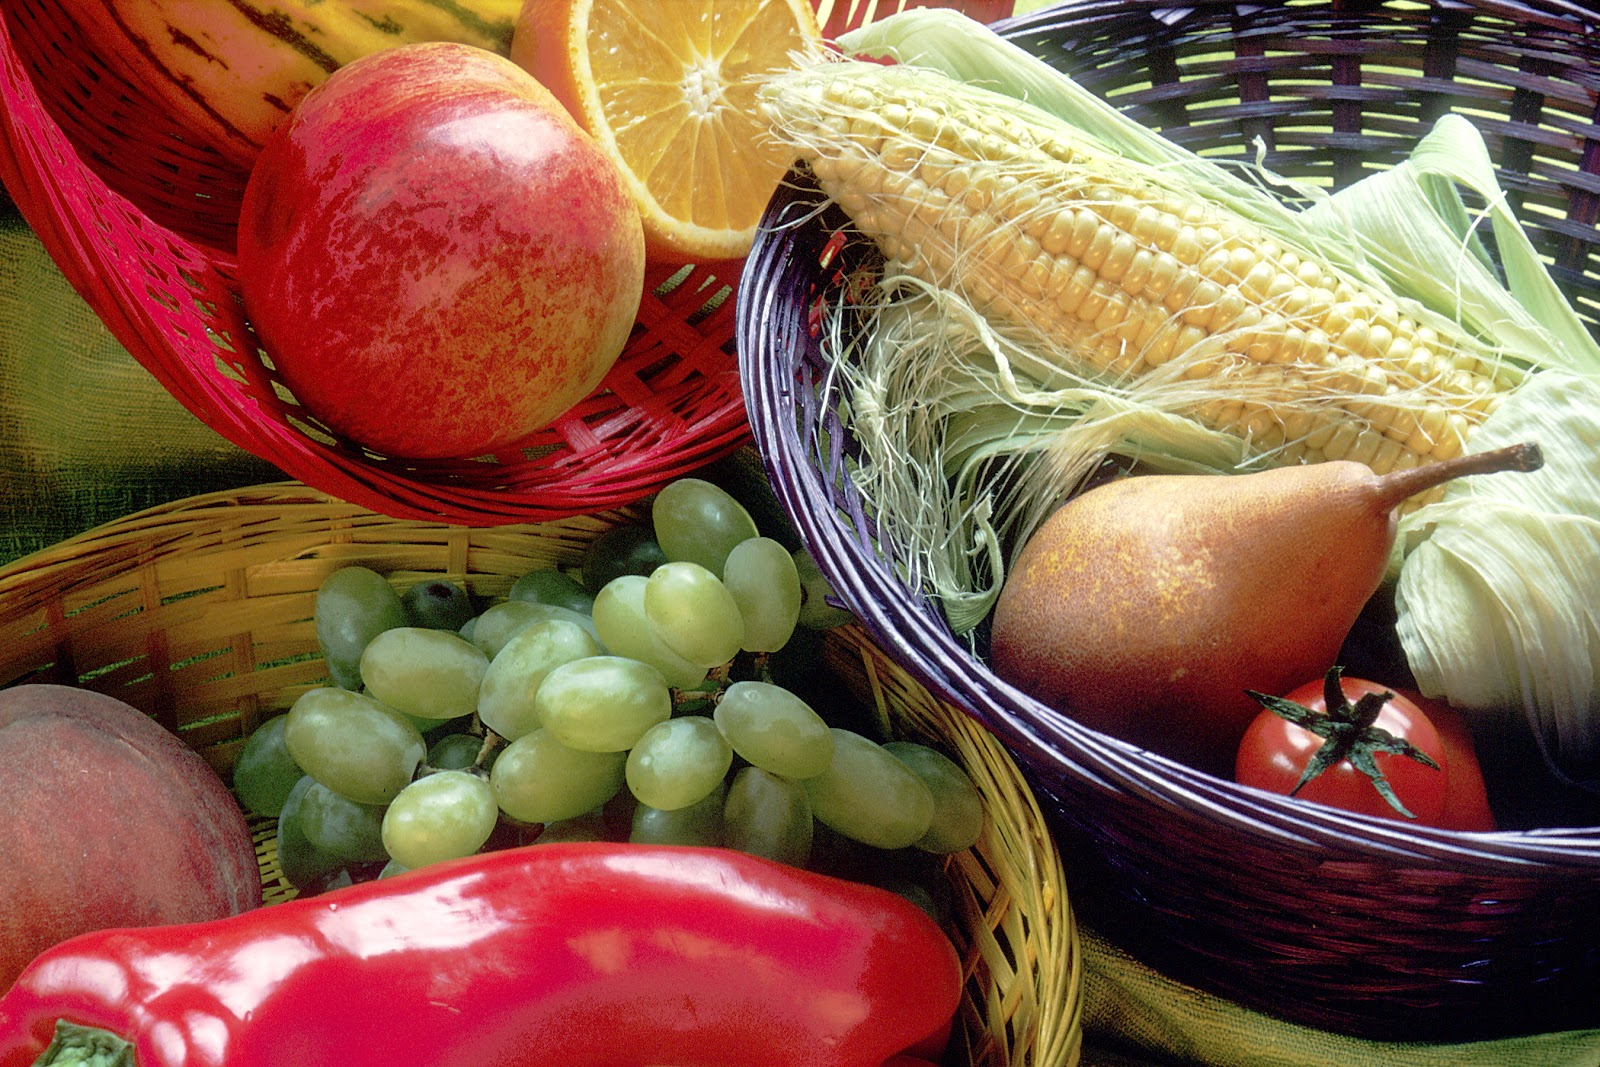 Fruit_and_vegetables_basket.jpg